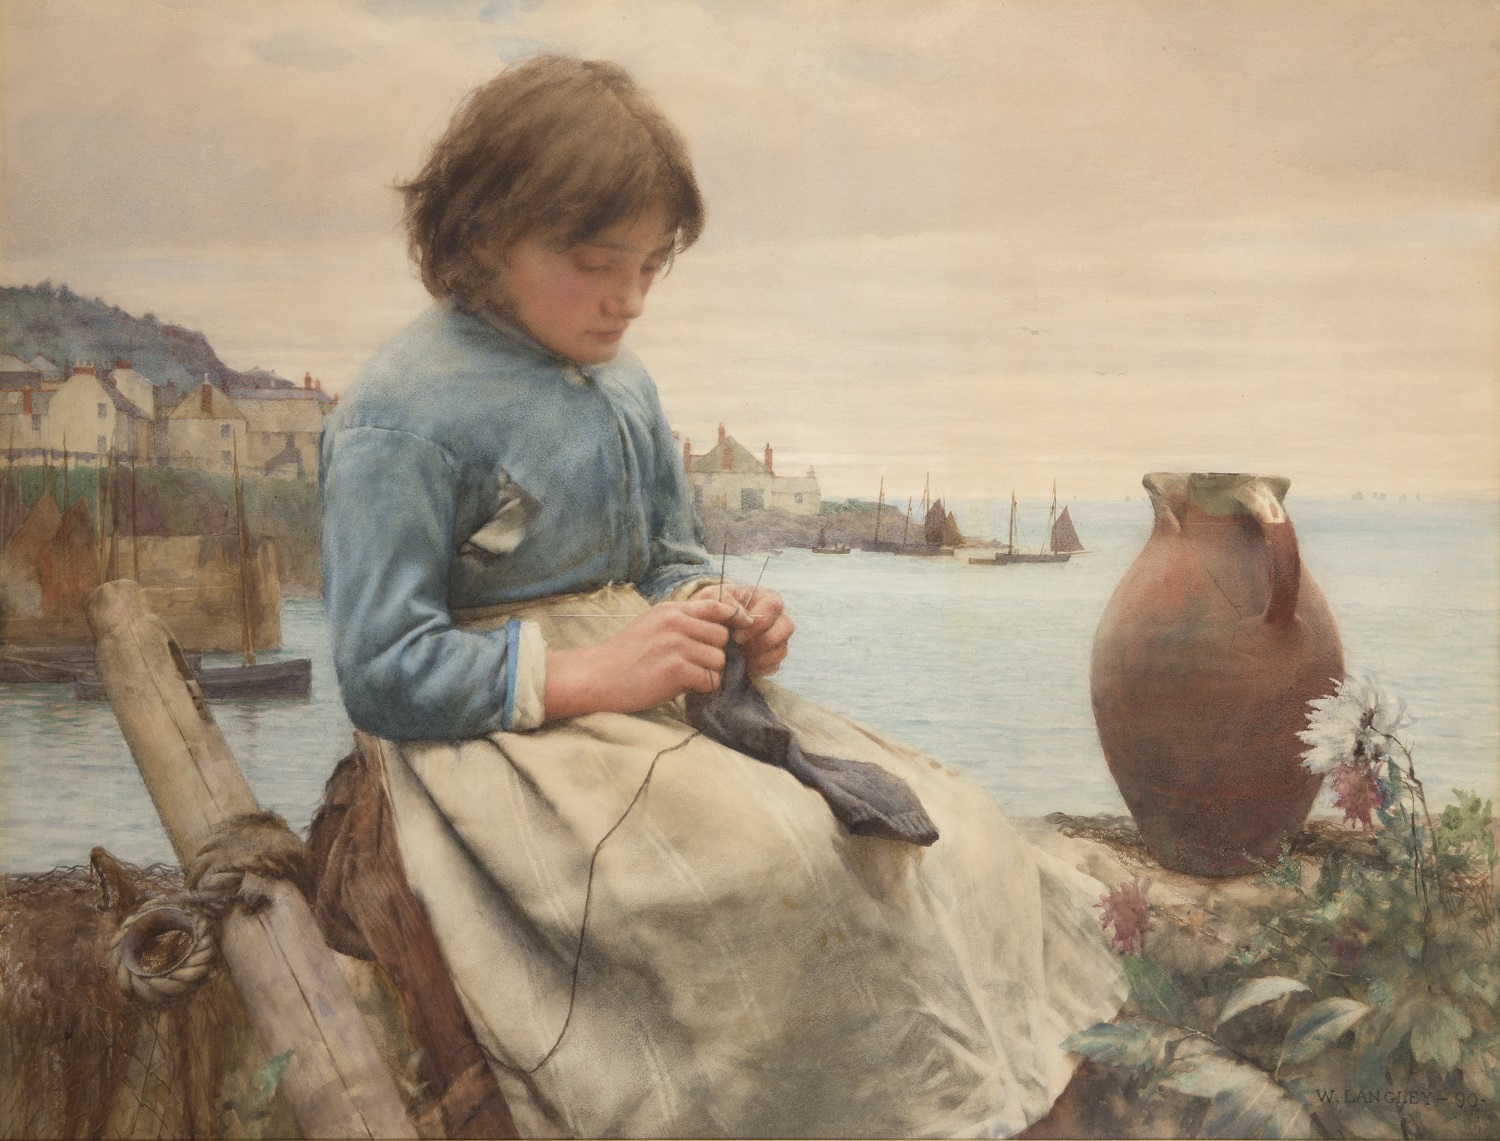 Walter Langley Knitting